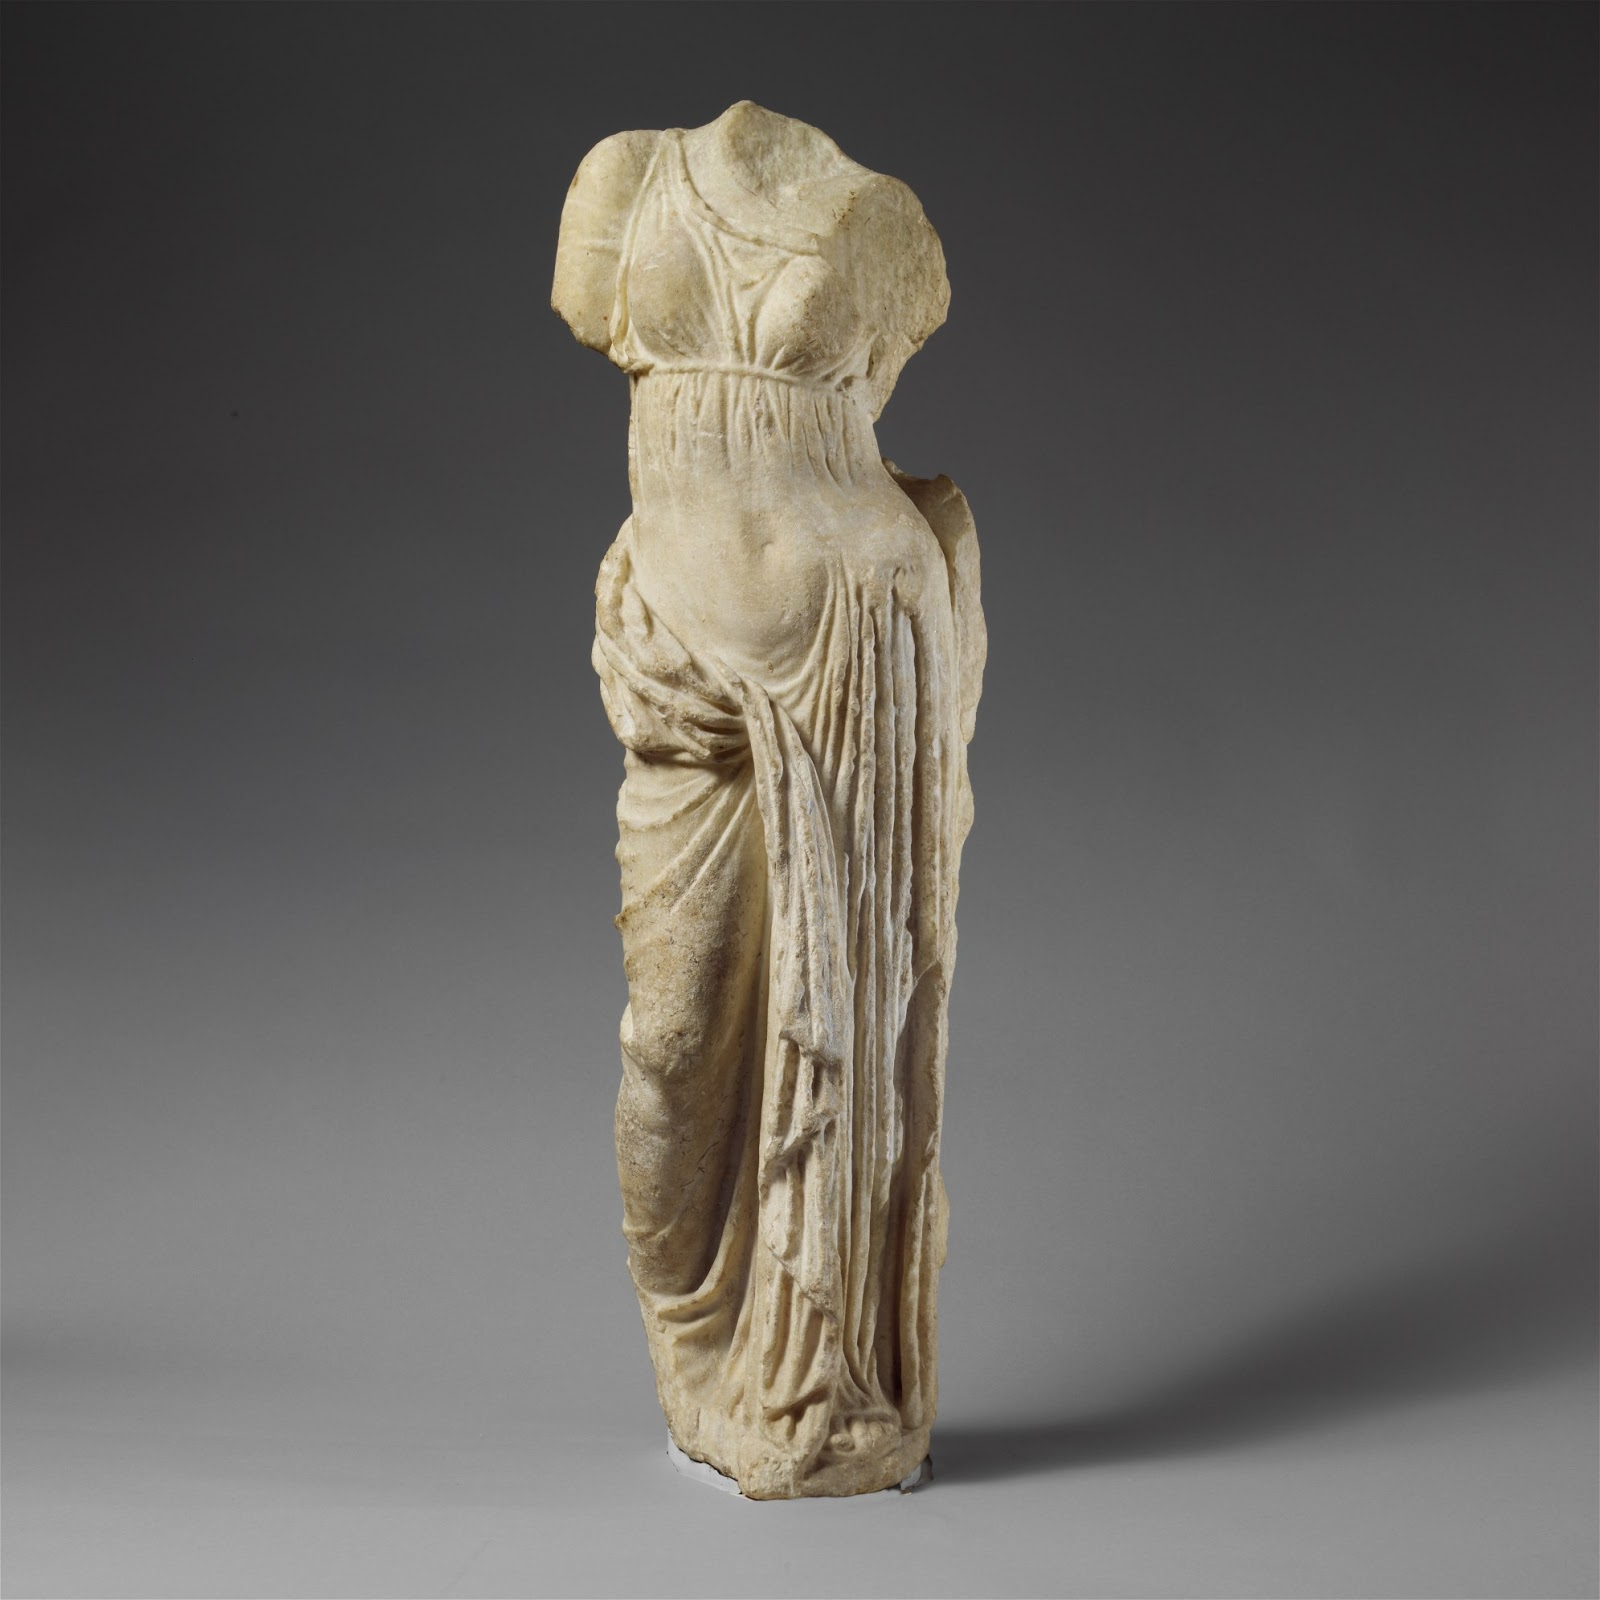 marble statue of aphrodite essay Sample of dedication letter for research paper jane austen essay questions difference between narrative and expository essays importance of music in life essay.